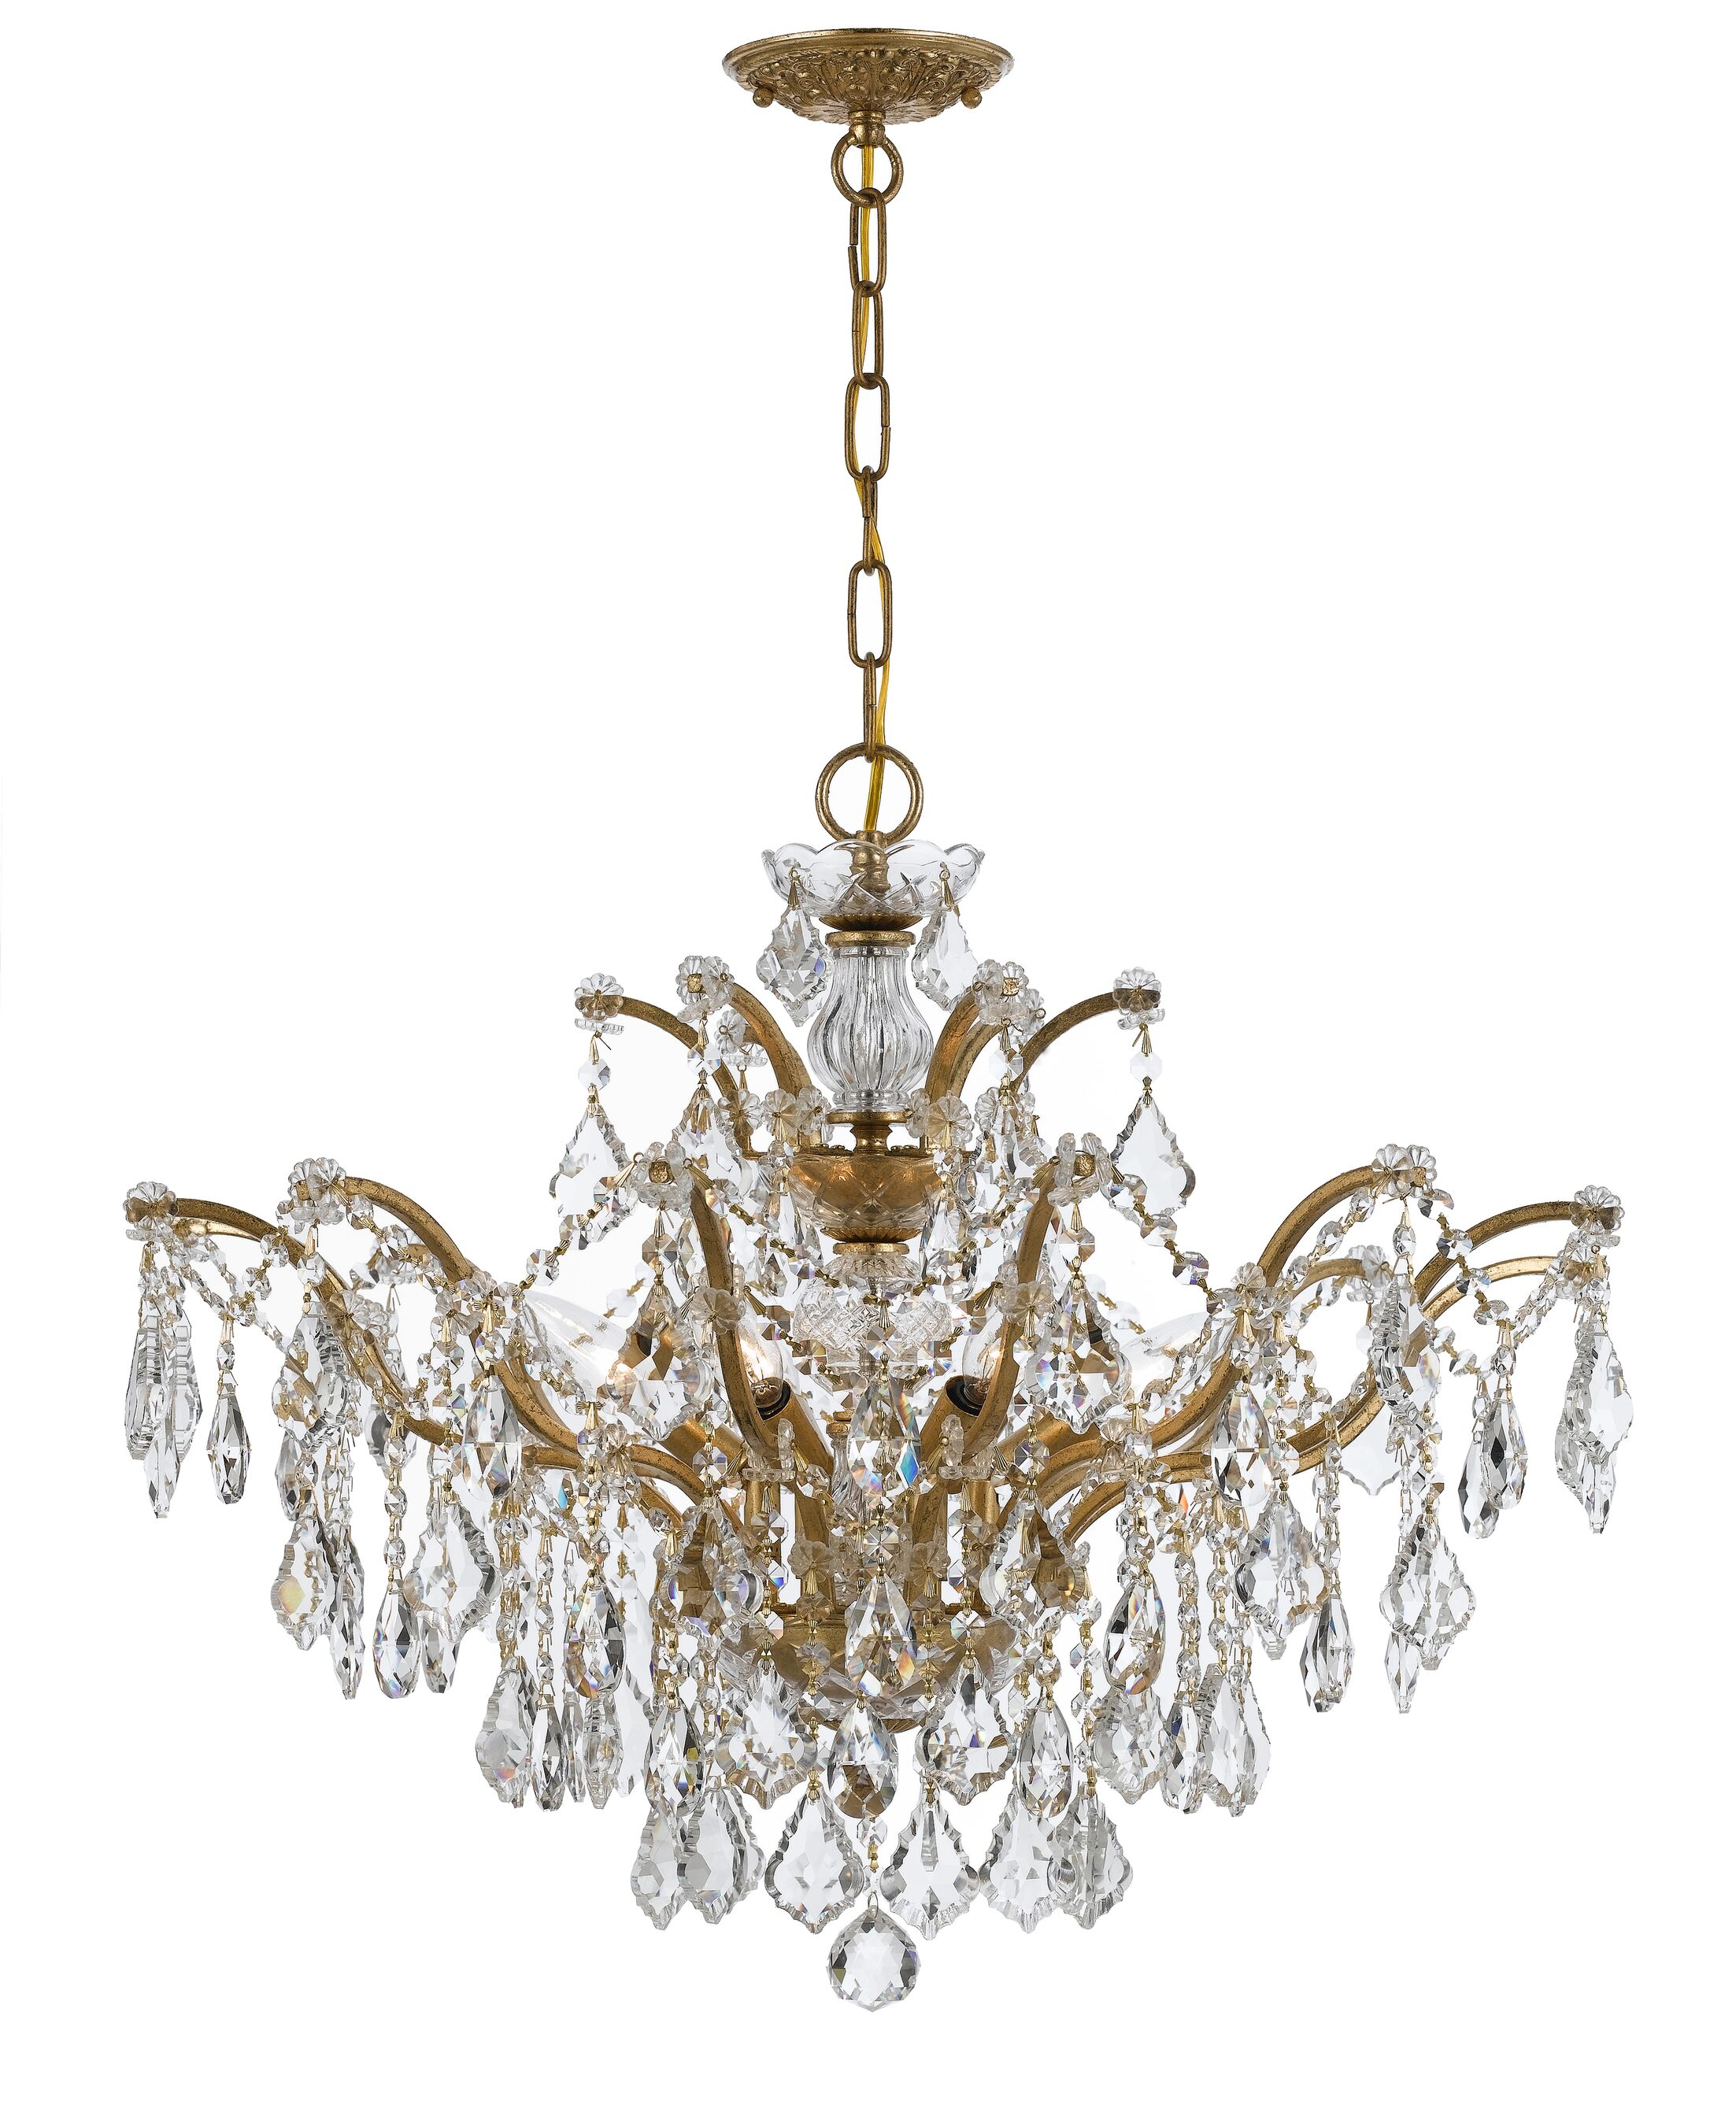 Maira 6-Light Candle Style Chandelier Finish: Antique Gold